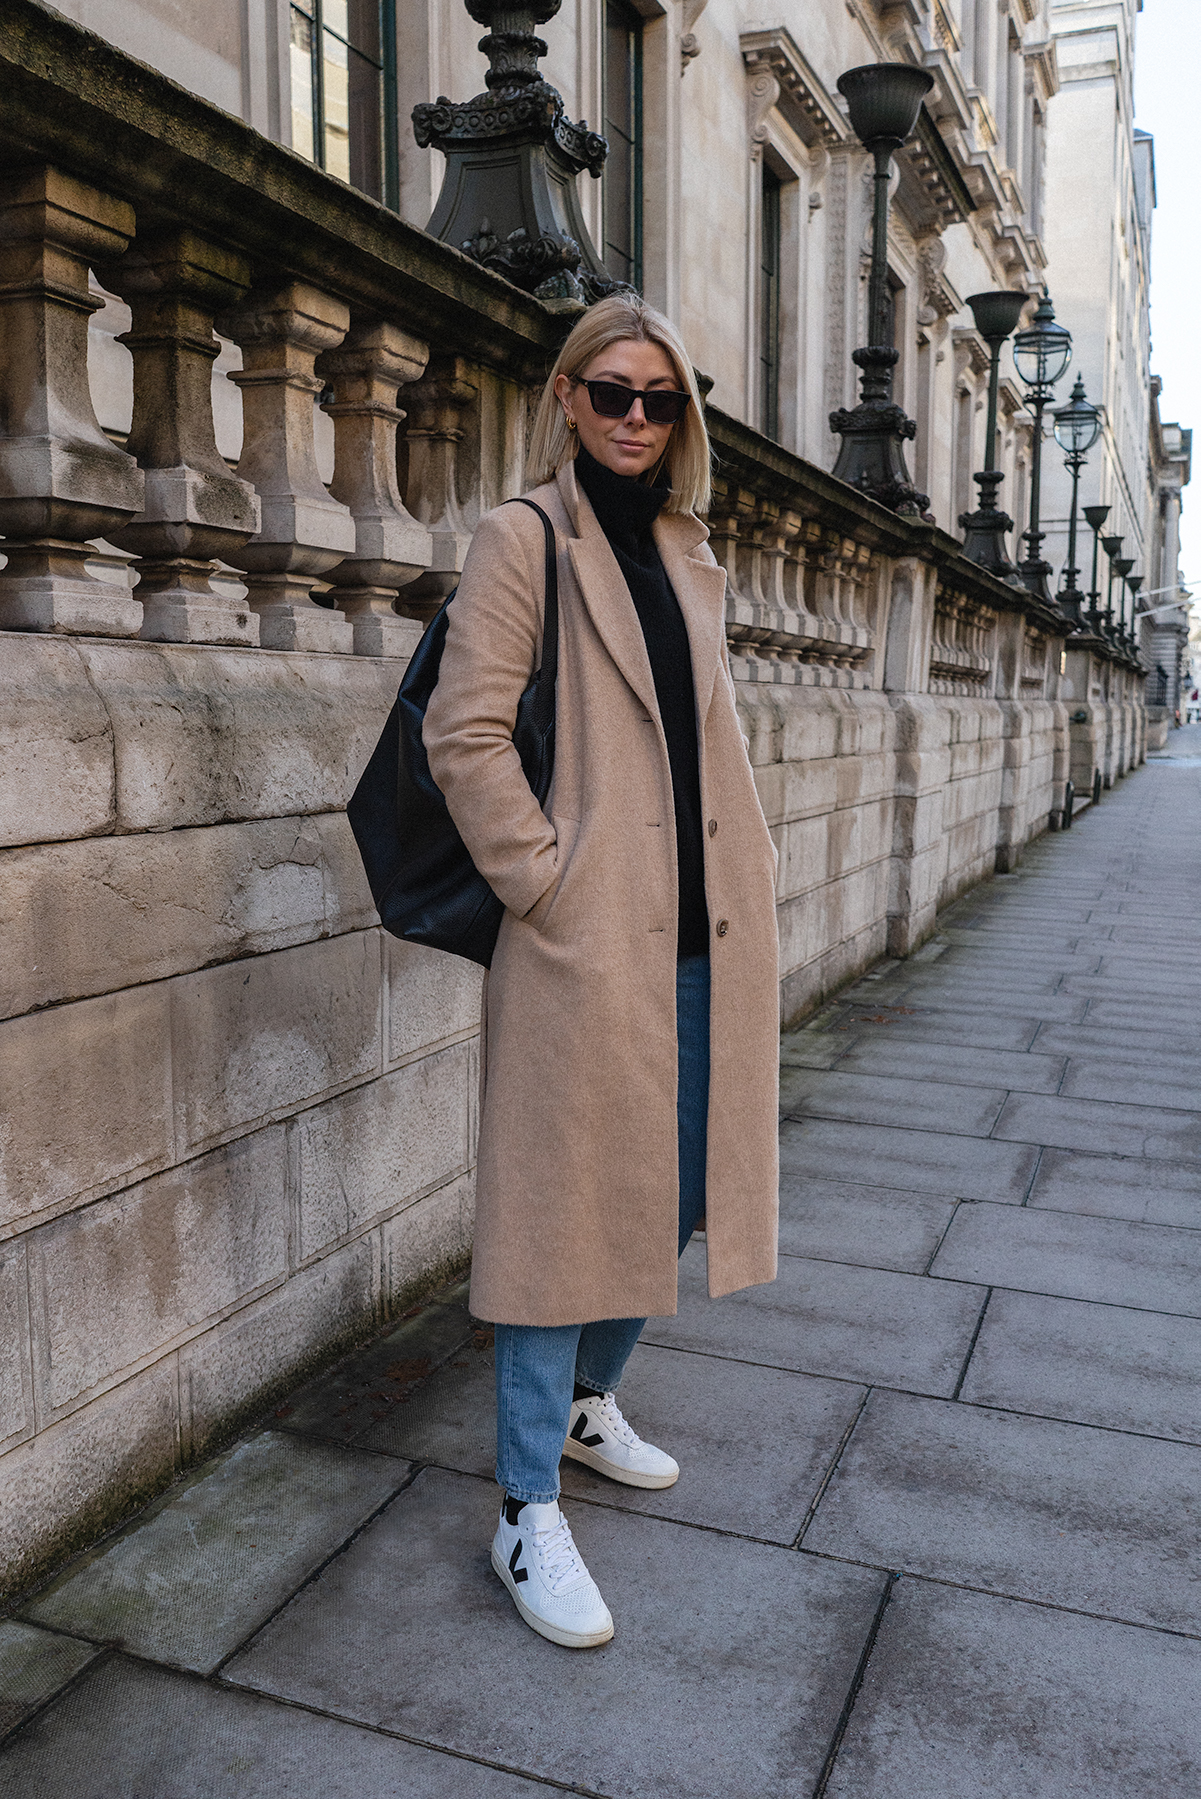 Emma Hill style, camel coat, light wash jeans, black socks, Veja V-10 white trainers, black leather Everlane hobo bag, Le Specs sunglasses, casual autumn winter outfit